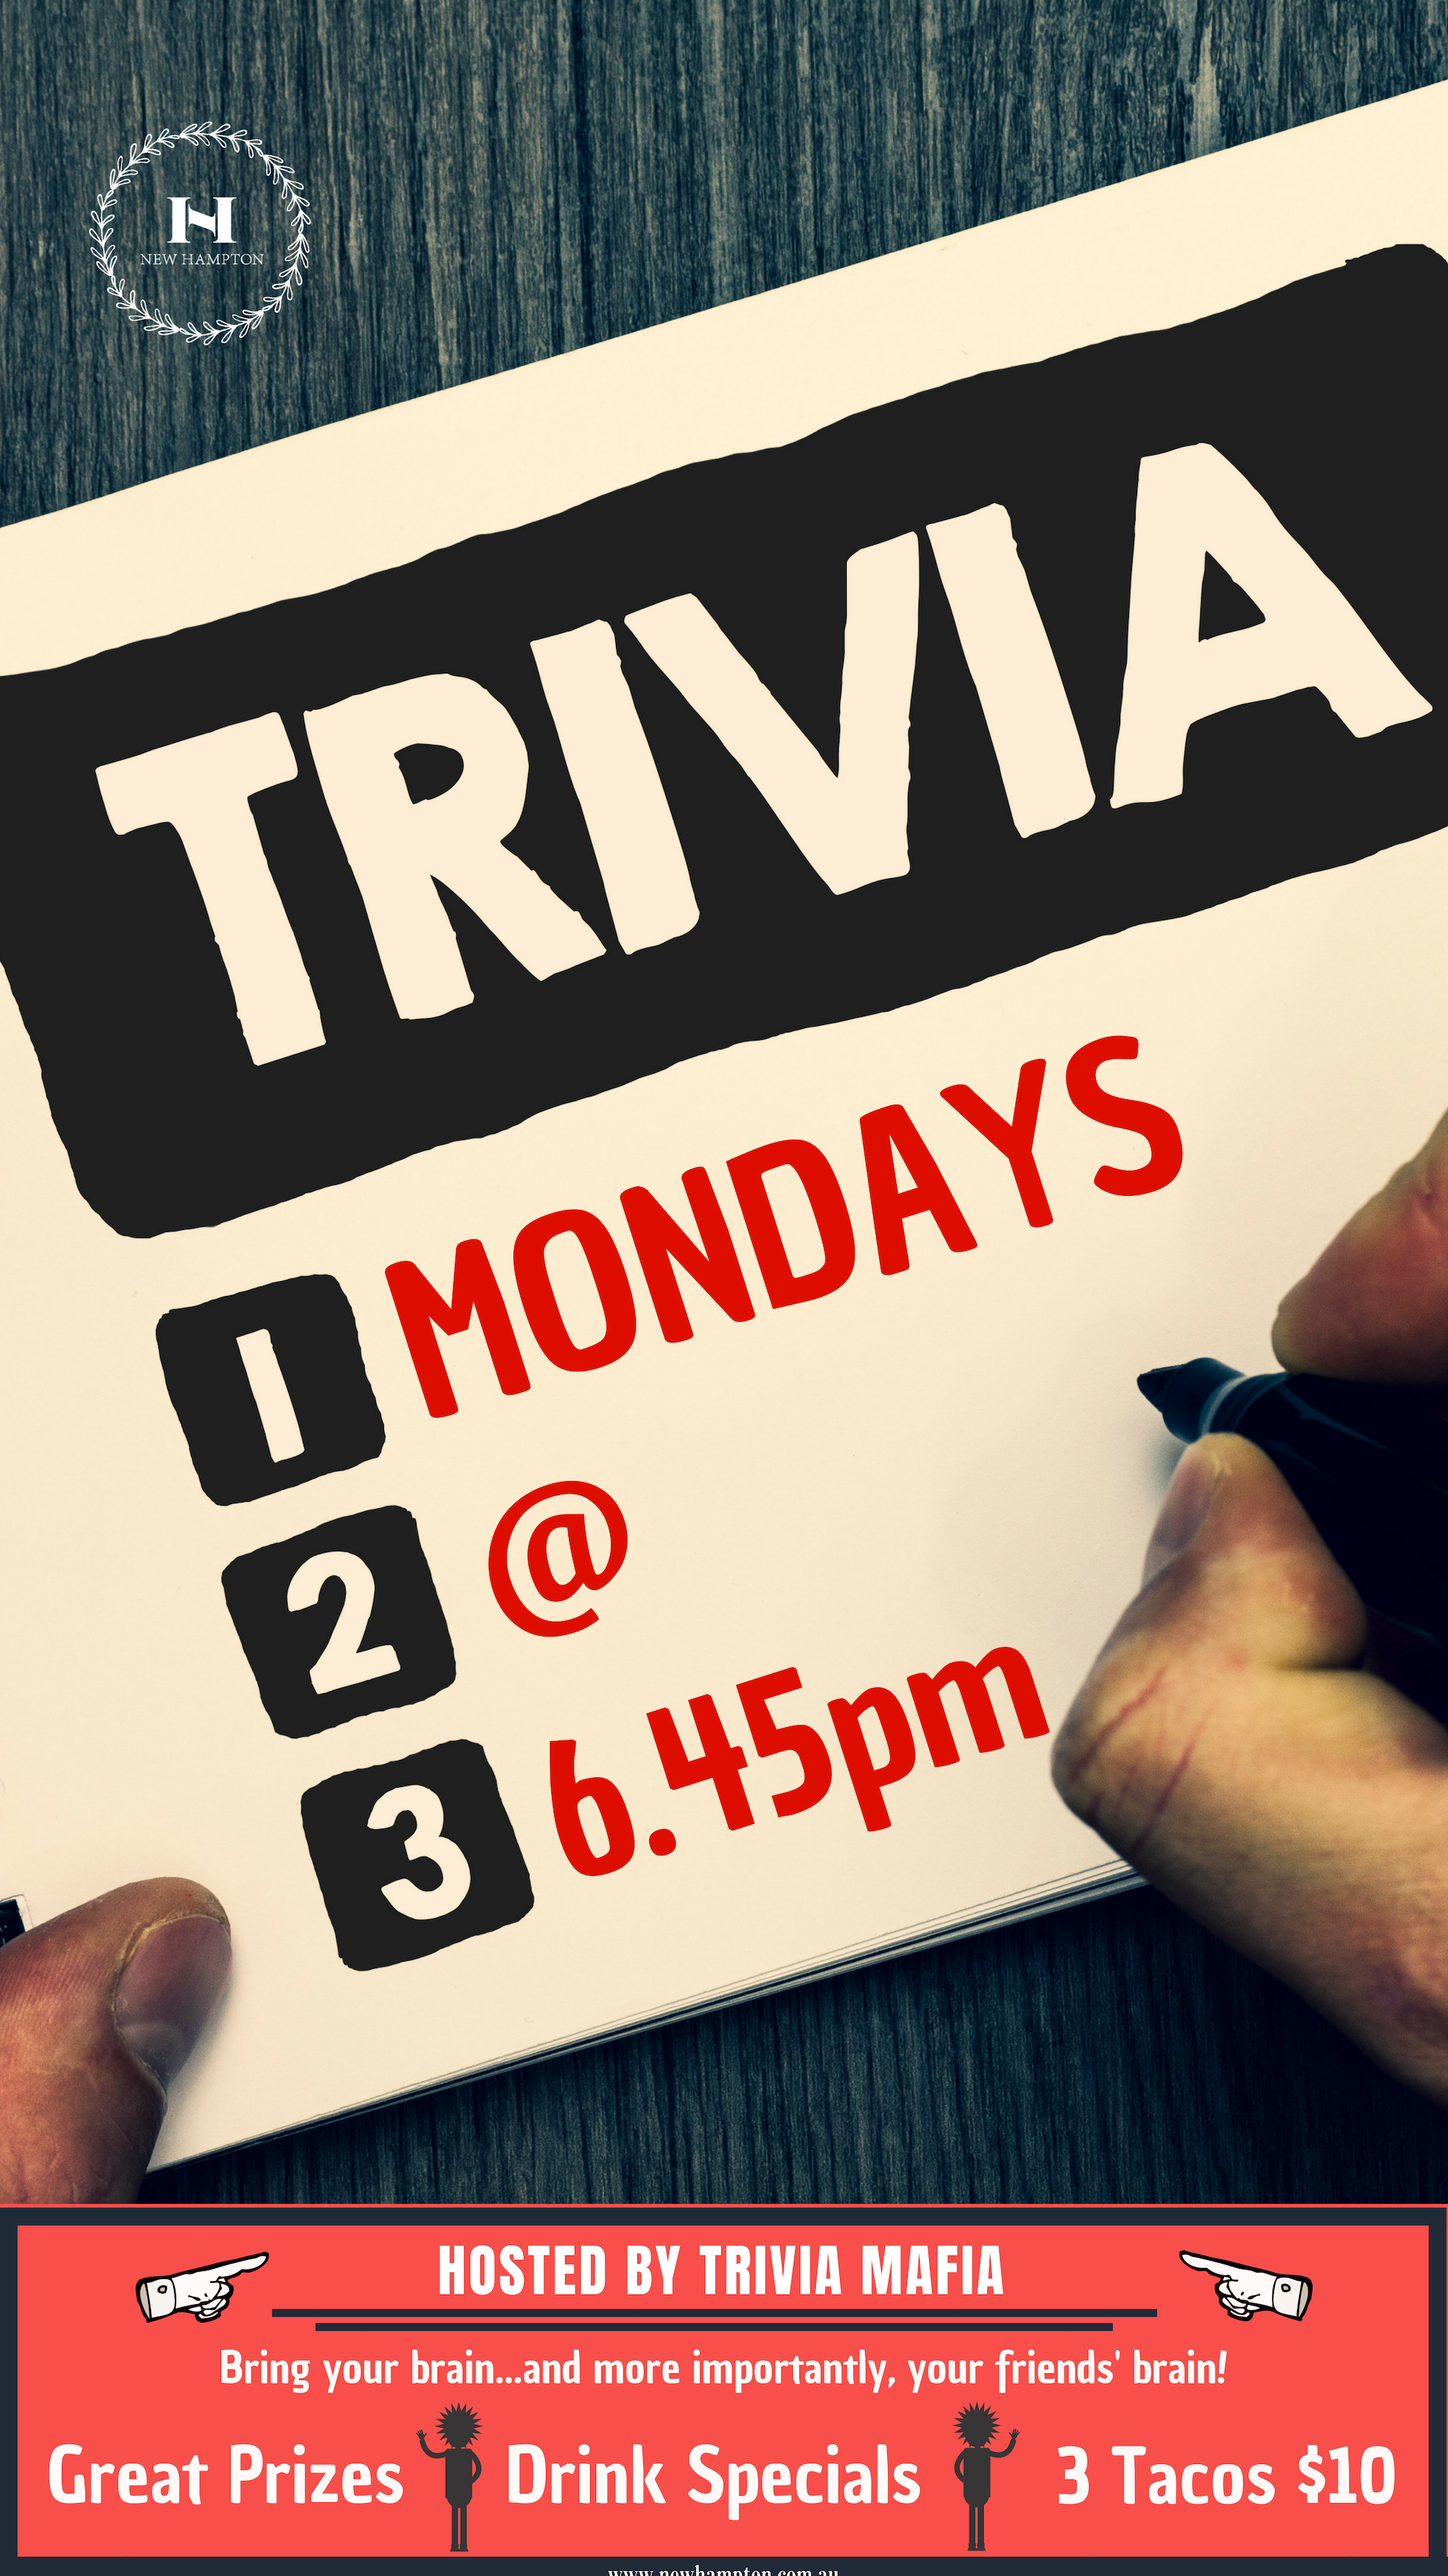 Monday TRIVIA - $10 Taco's$5 Tequila$10 MargaritasMonday's are taken care of at The New Hampton